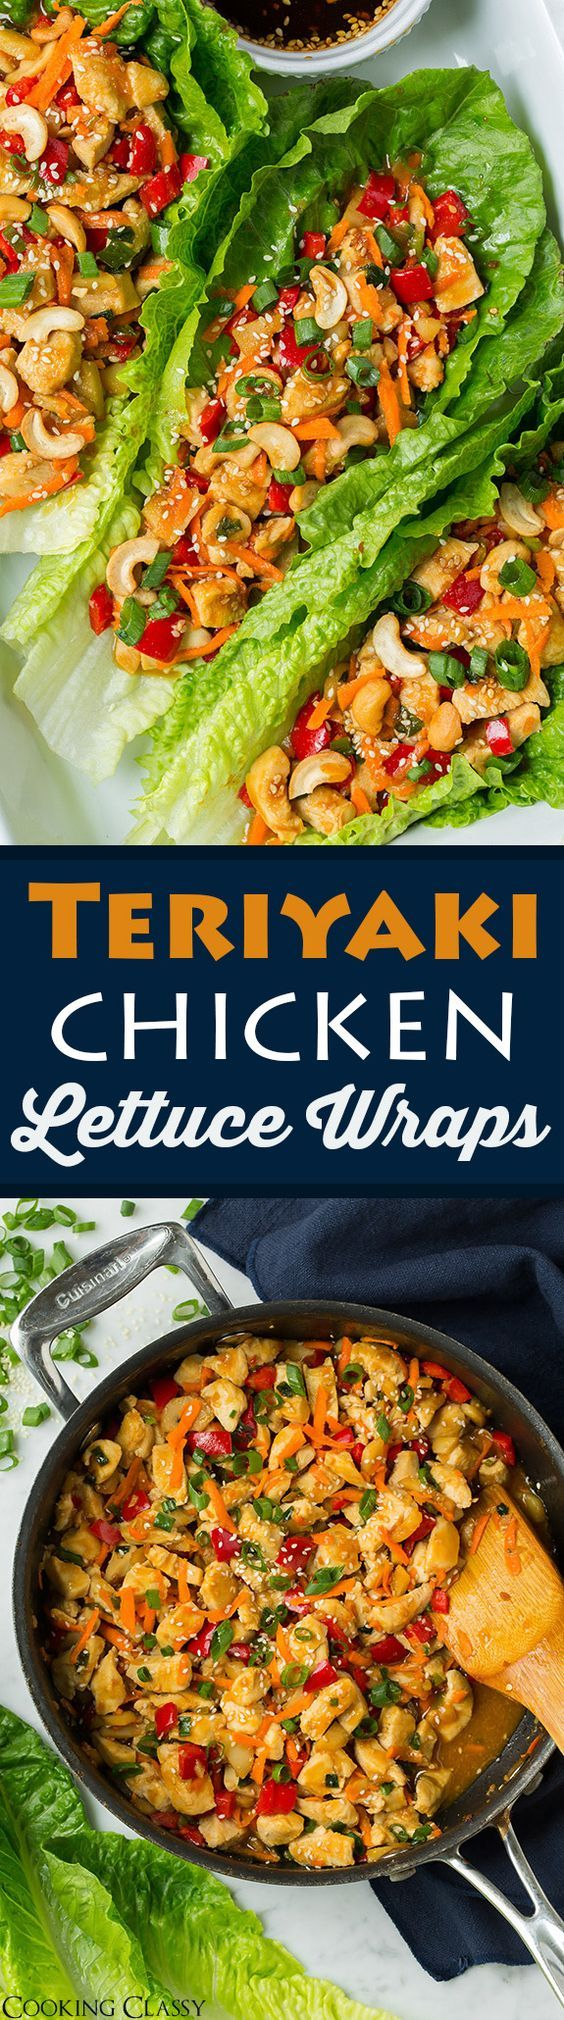 Teriyaki Chicken Lettuce Wraps  SO easy and SO GOOD! perfect meal for busy weeknights!